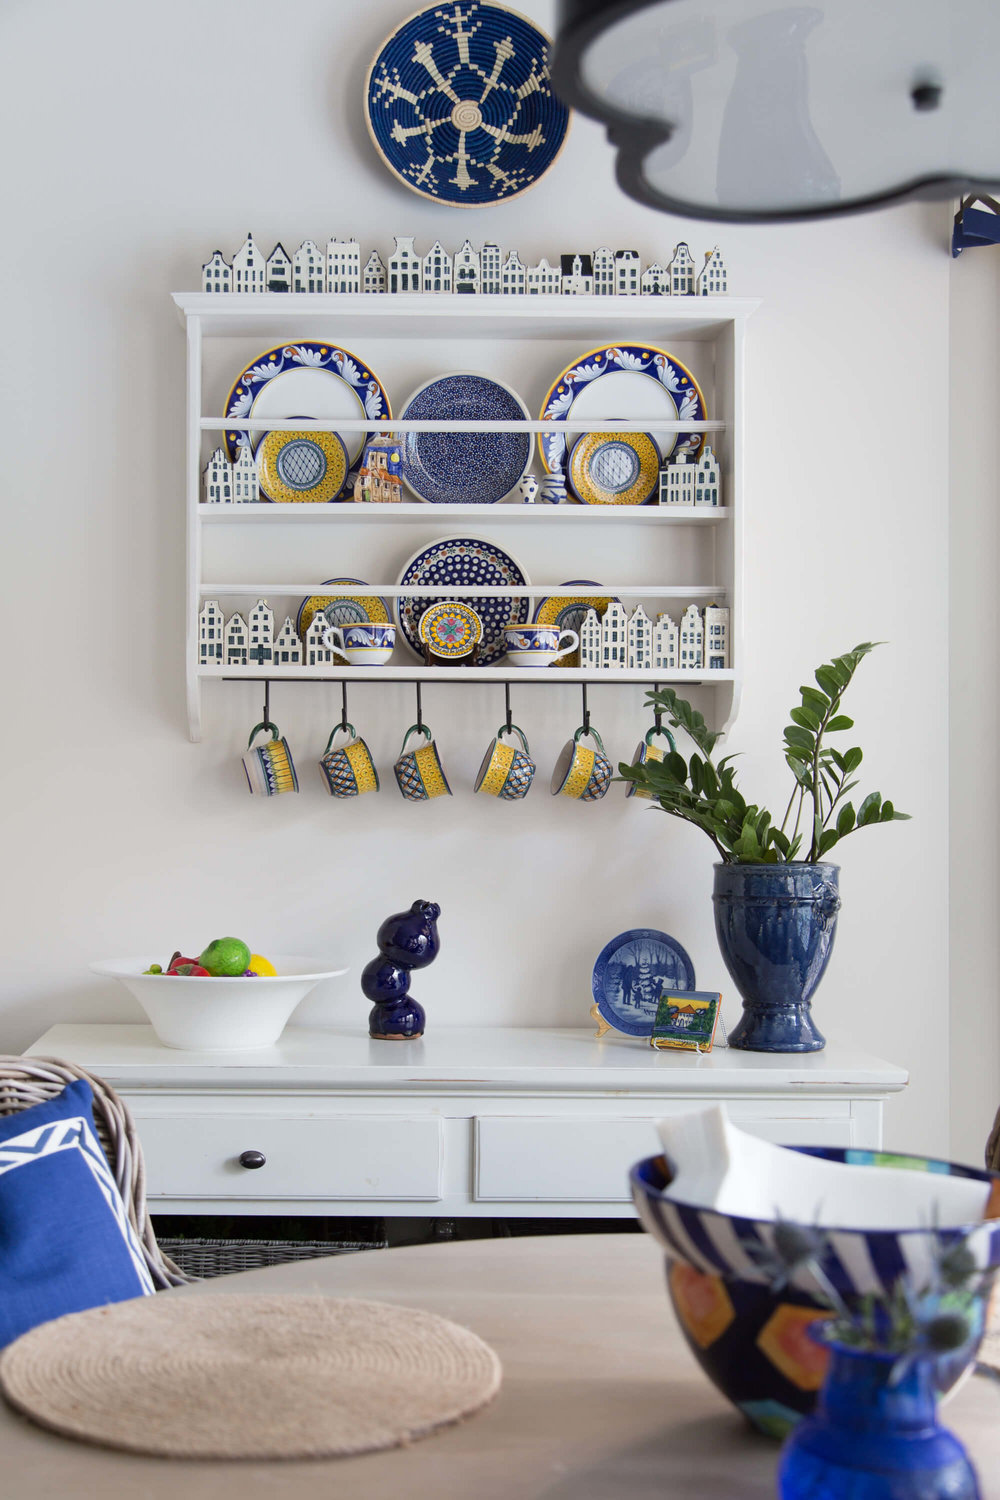 Plate rack with Italian plates on the wall - Breakfast room and kitchen remodel, before and after - Carla Aston, Designer